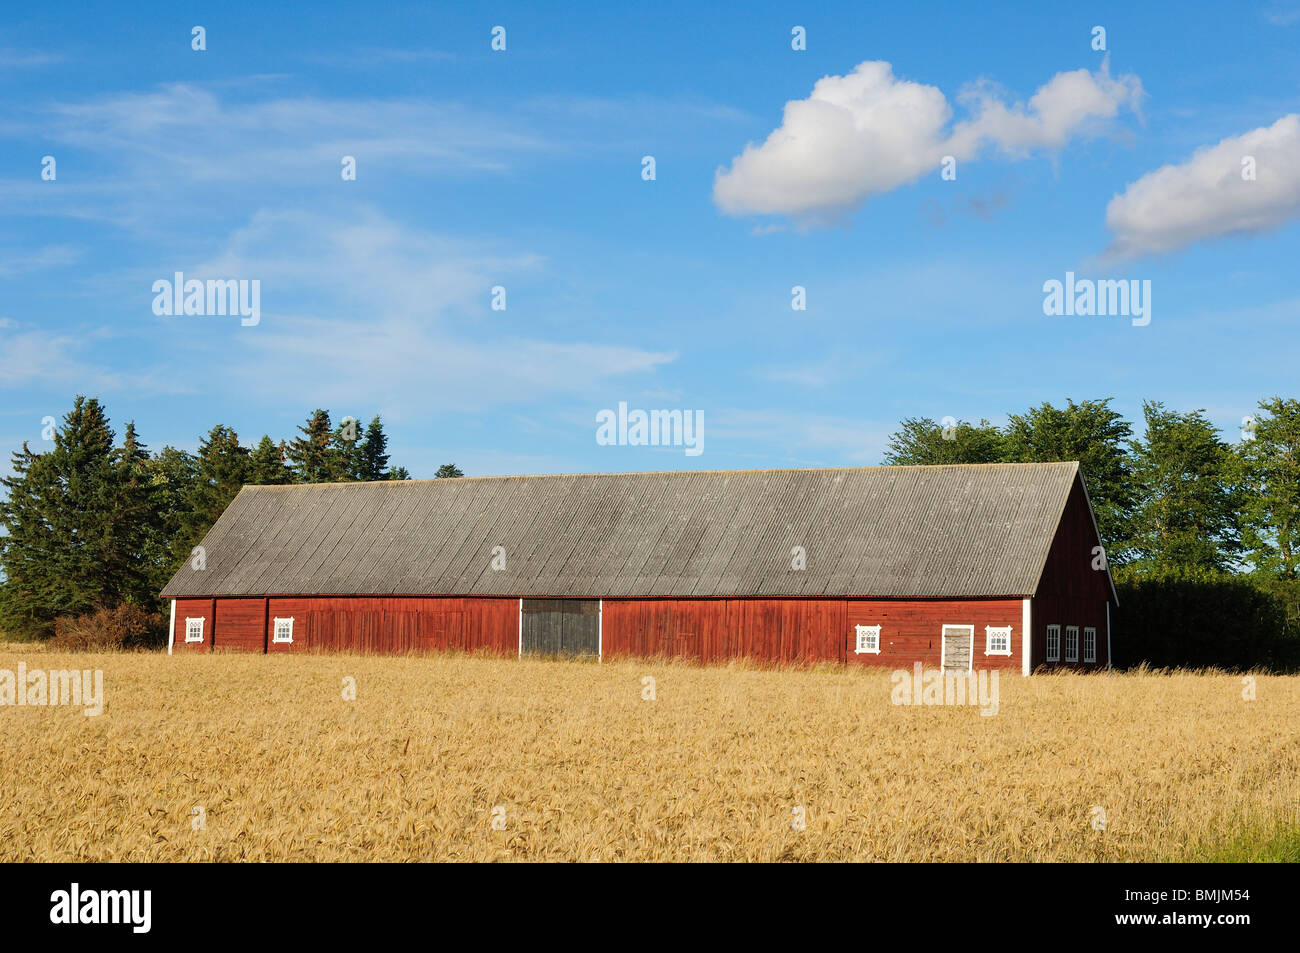 Scandinavian Peninsula, Sweden, Ostergotland, Barn in field - Stock Image